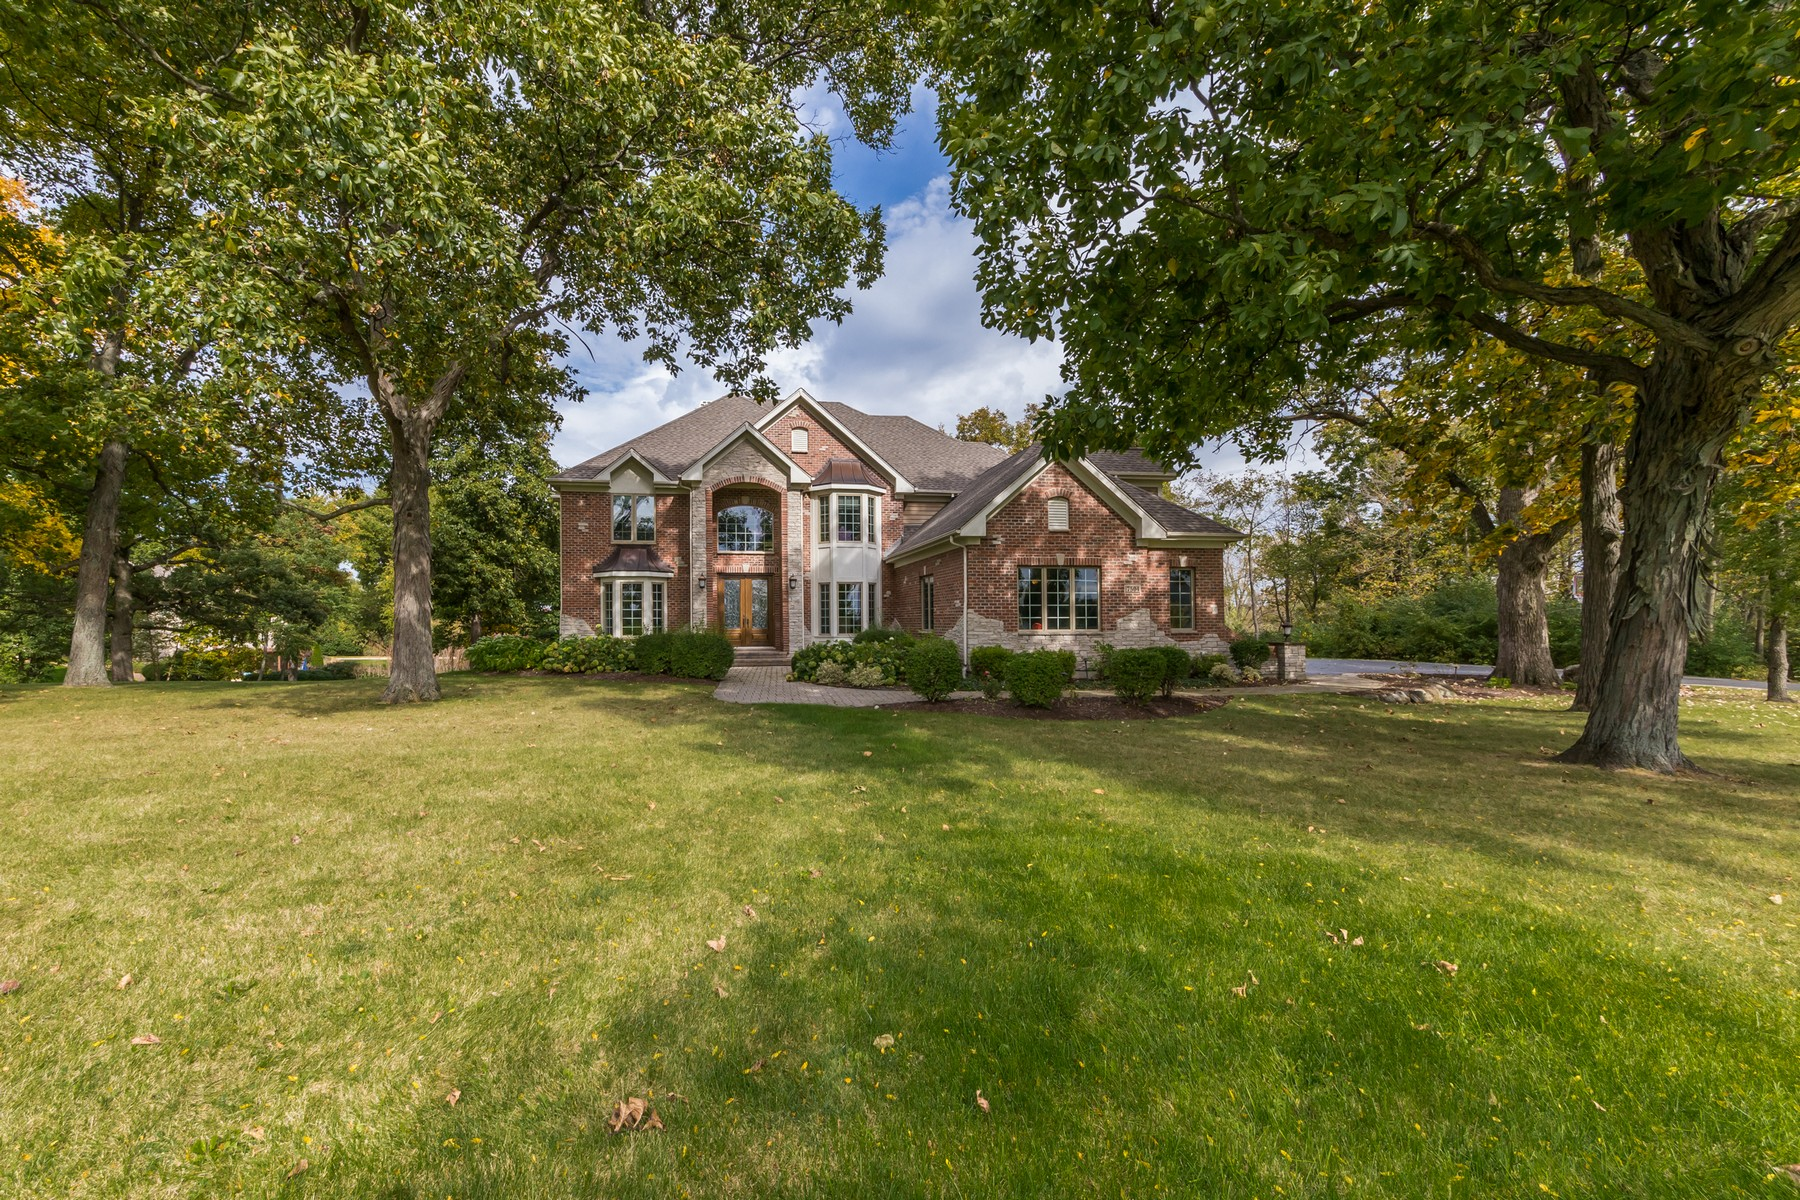 Single Family Home for Sale at Magnificent Luxurious Living In Crystal Lake 7504 Vida Avenue Lakewood, Illinois, 60014 United States